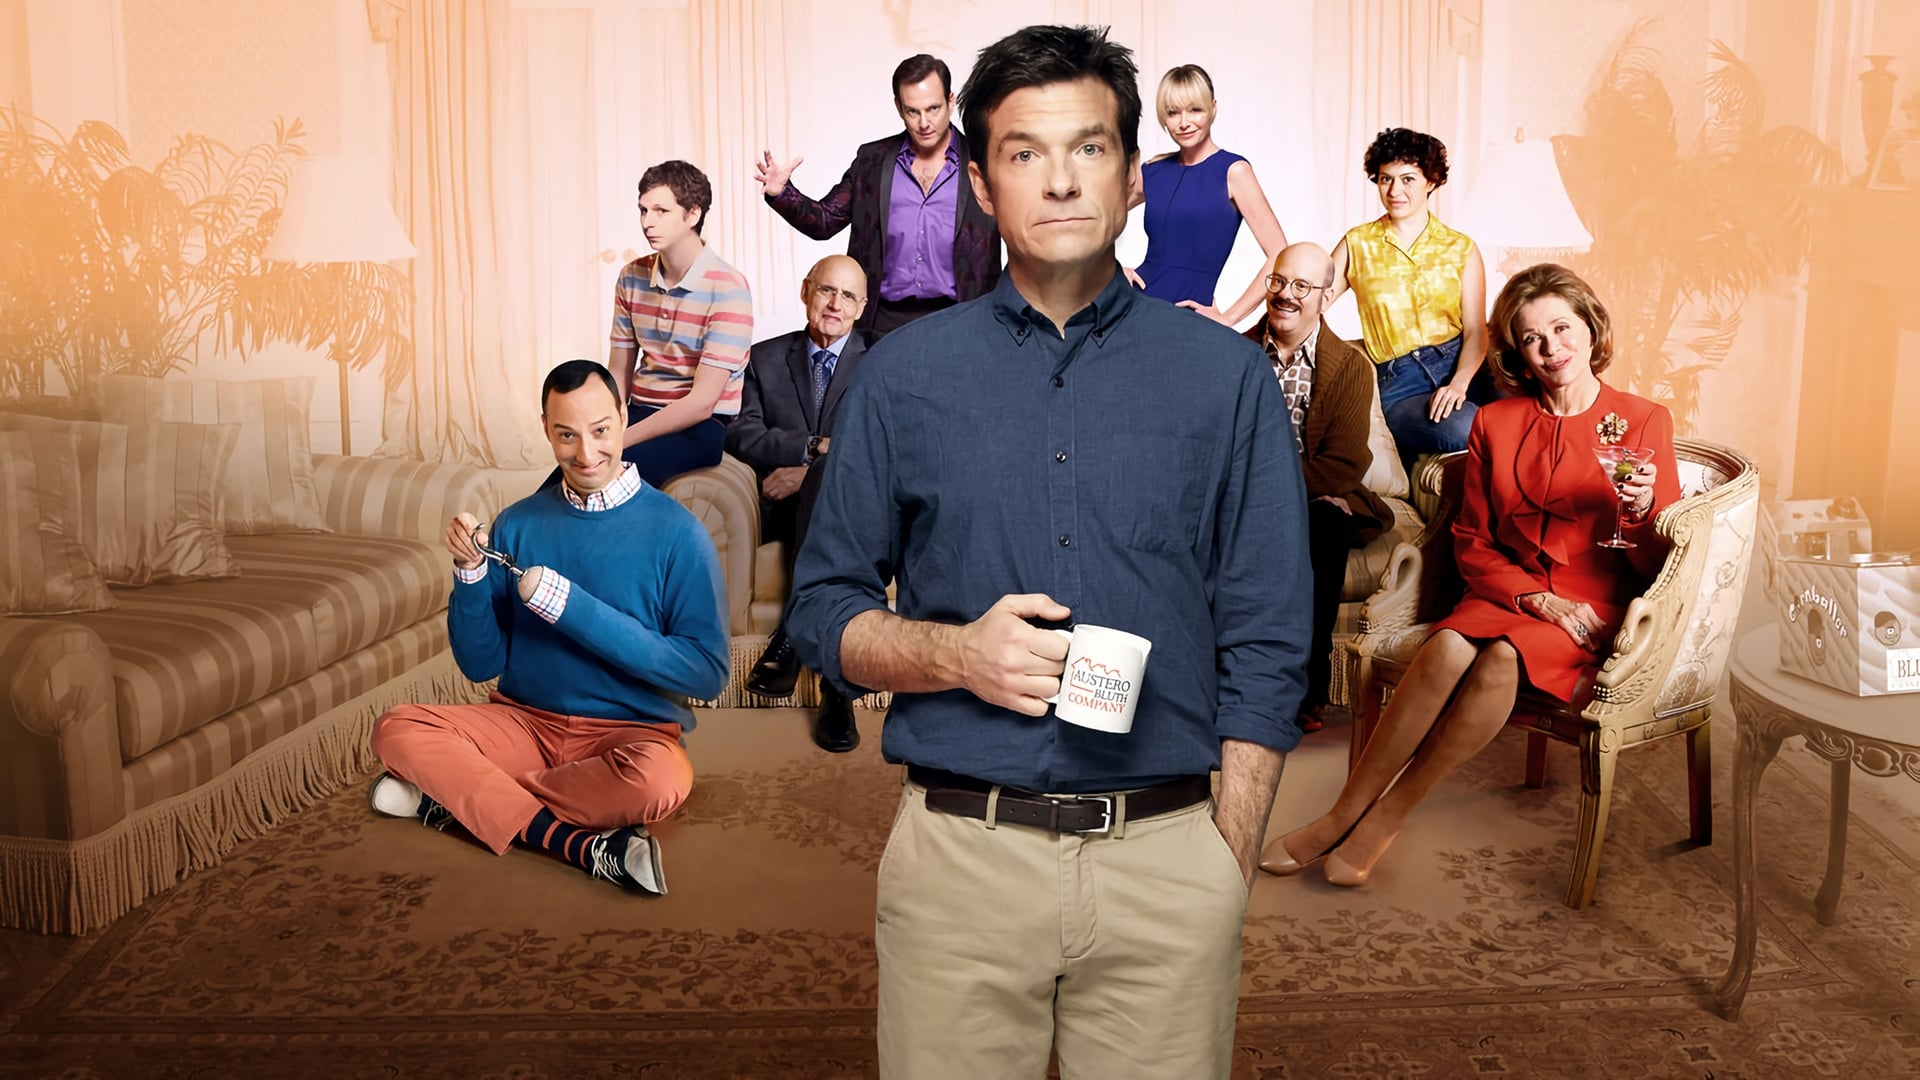 Level-headed son Michael Bluth takes over family affairs after his father is imprisoned. But the rest of his spoiled, dysfunctional family are making his job unbearable.